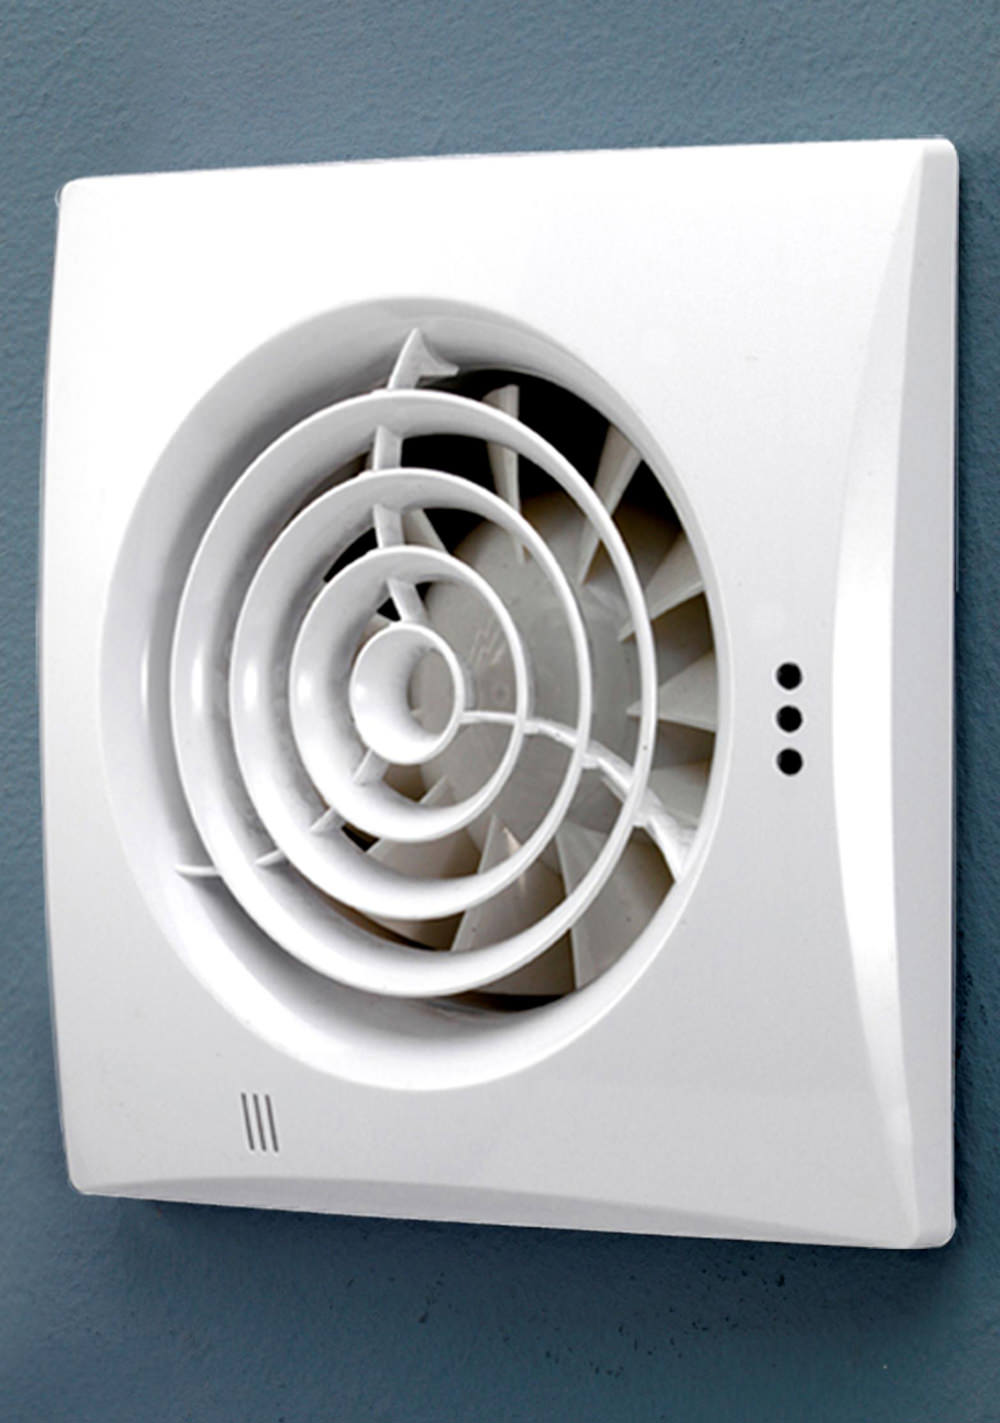 large kitchen sinks black cabinets hib hush wall mounted white fan with timer and humidity ...